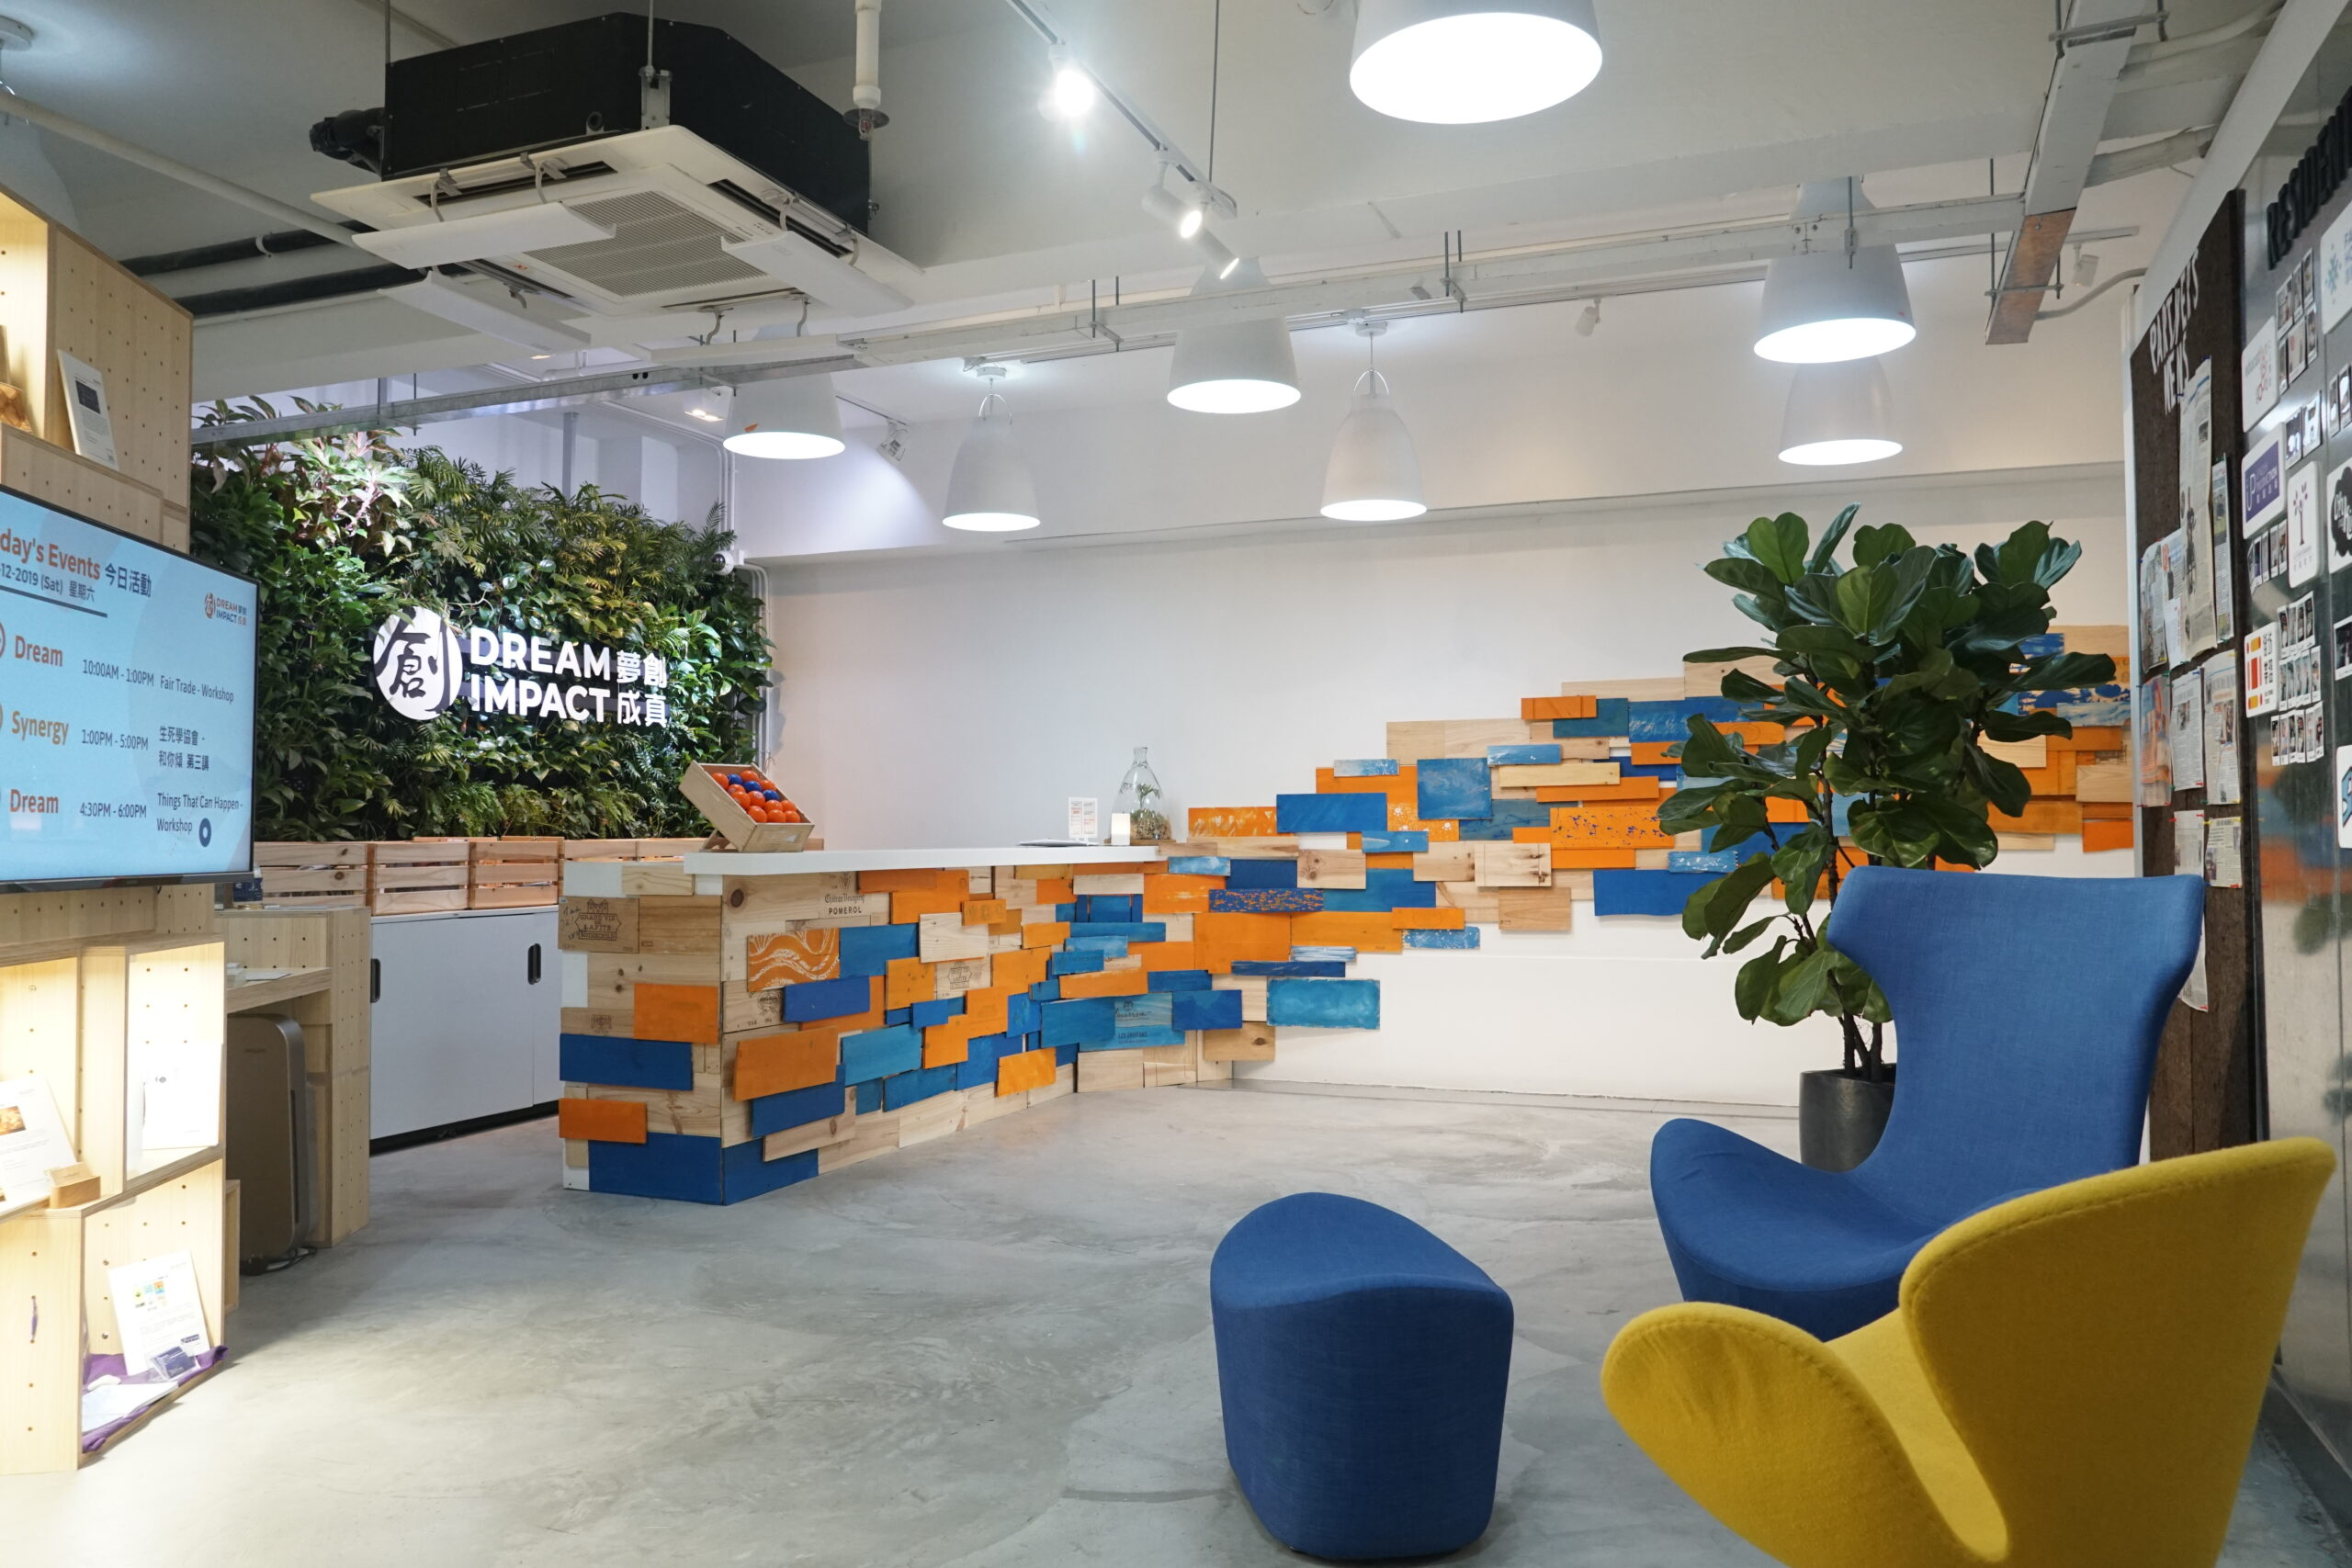 Dream Impact co-working space reception